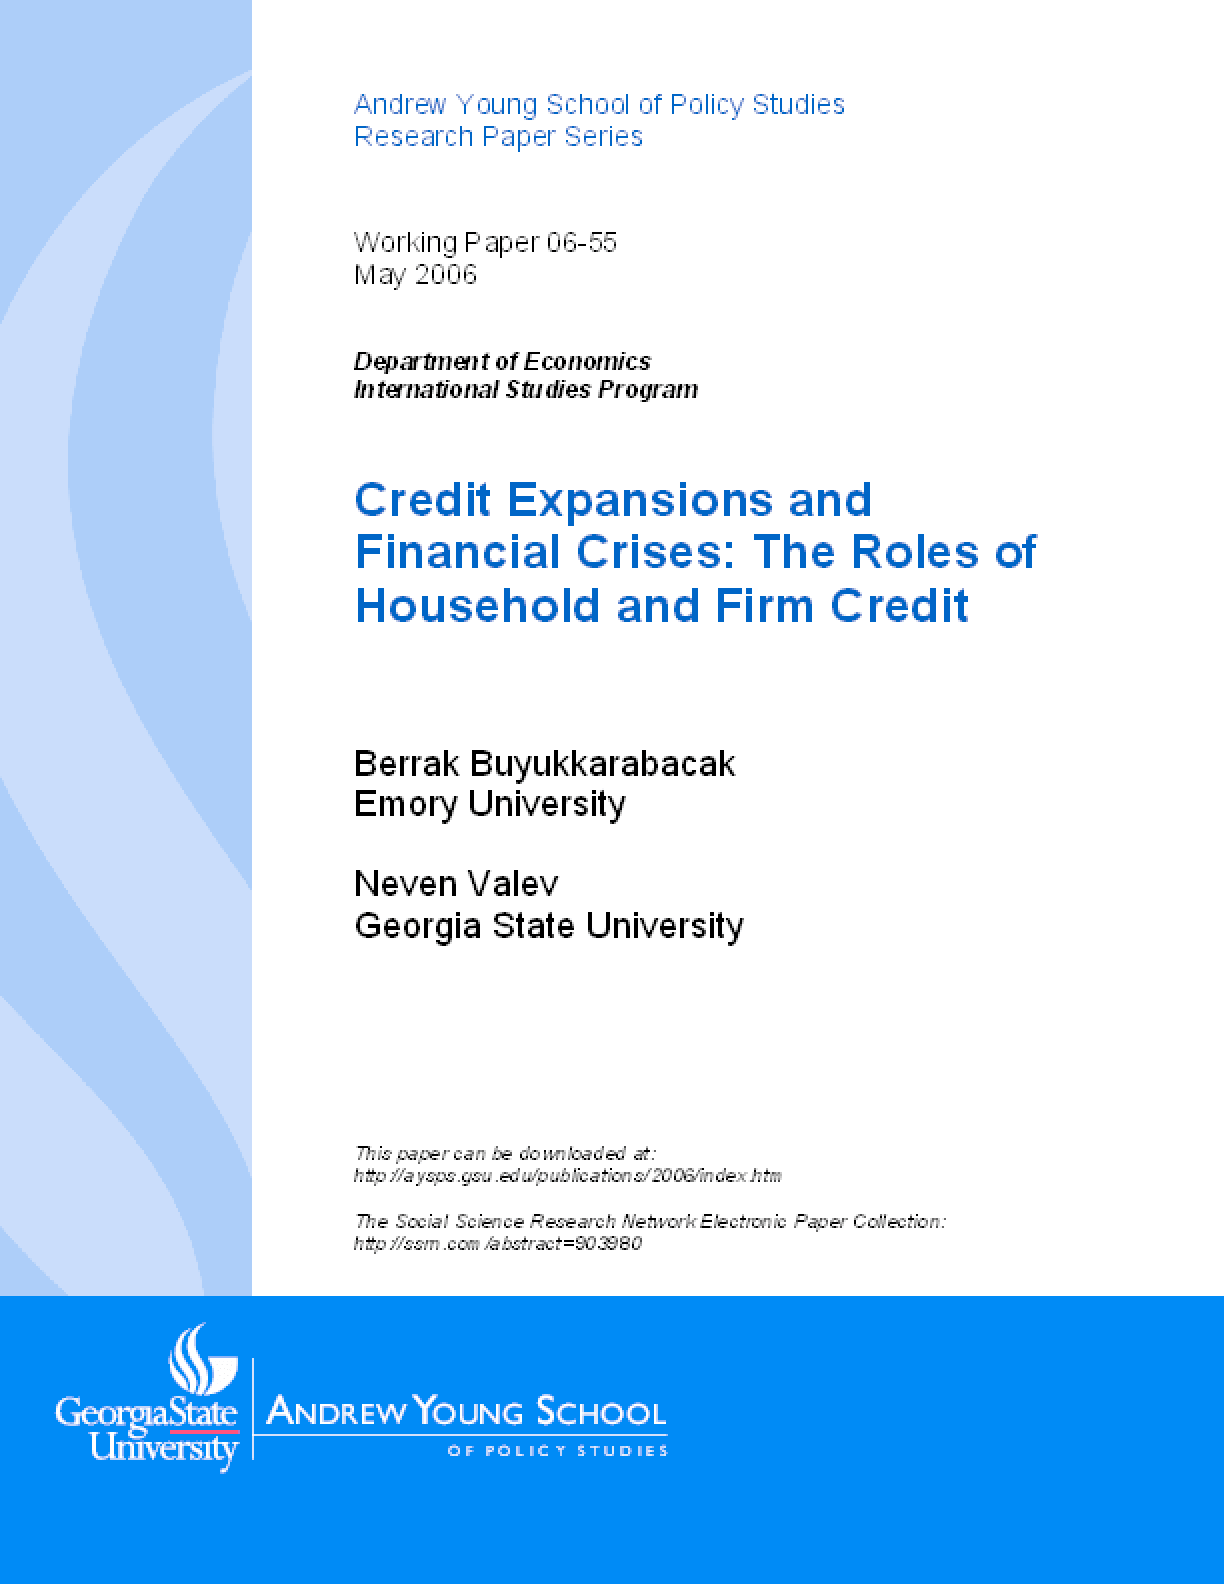 Credit Expansions and Financial Crises: The Roles of Household and Firm Credit